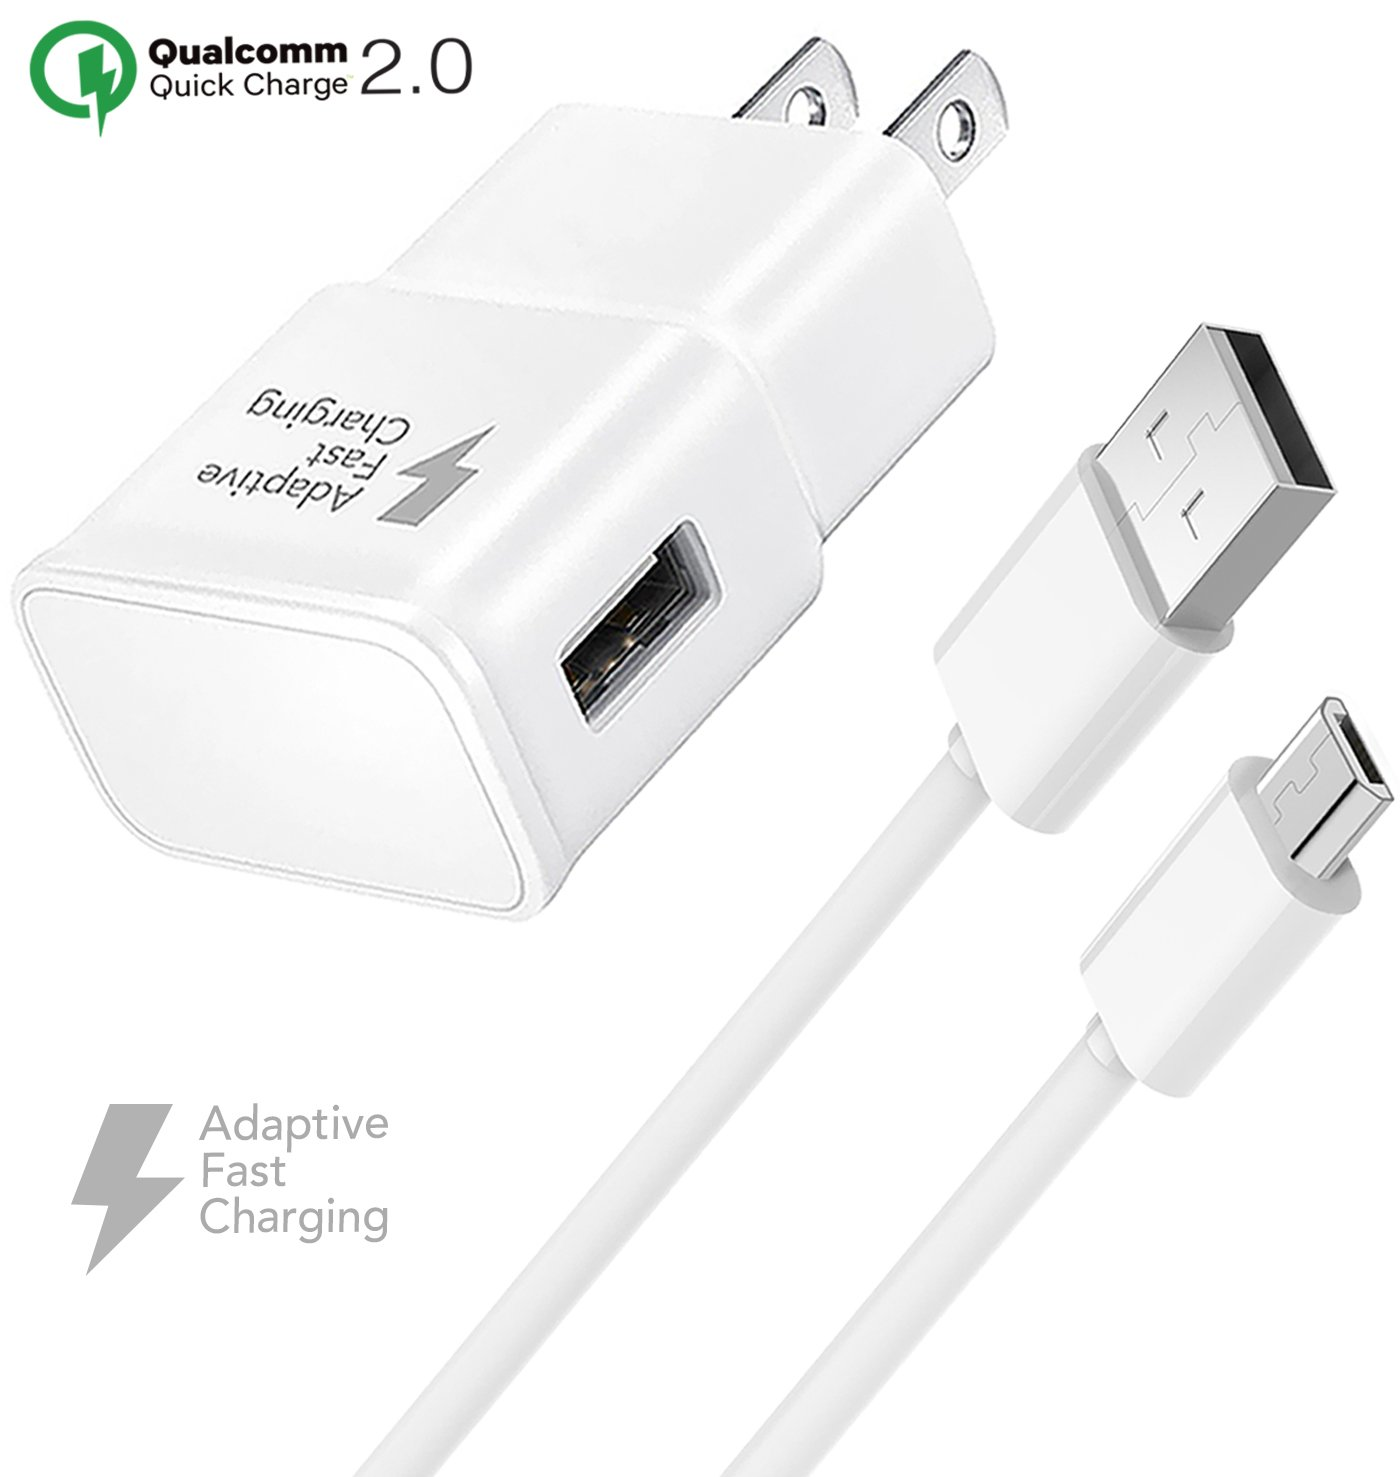 Samsung Galaxy S7 Adaptive Fast Wall Charger Set with Micro-USB Cable, Galaxy S6, Galaxy S7 Active Charger Quick Micro USB 2.0 Cable Compatible with ...